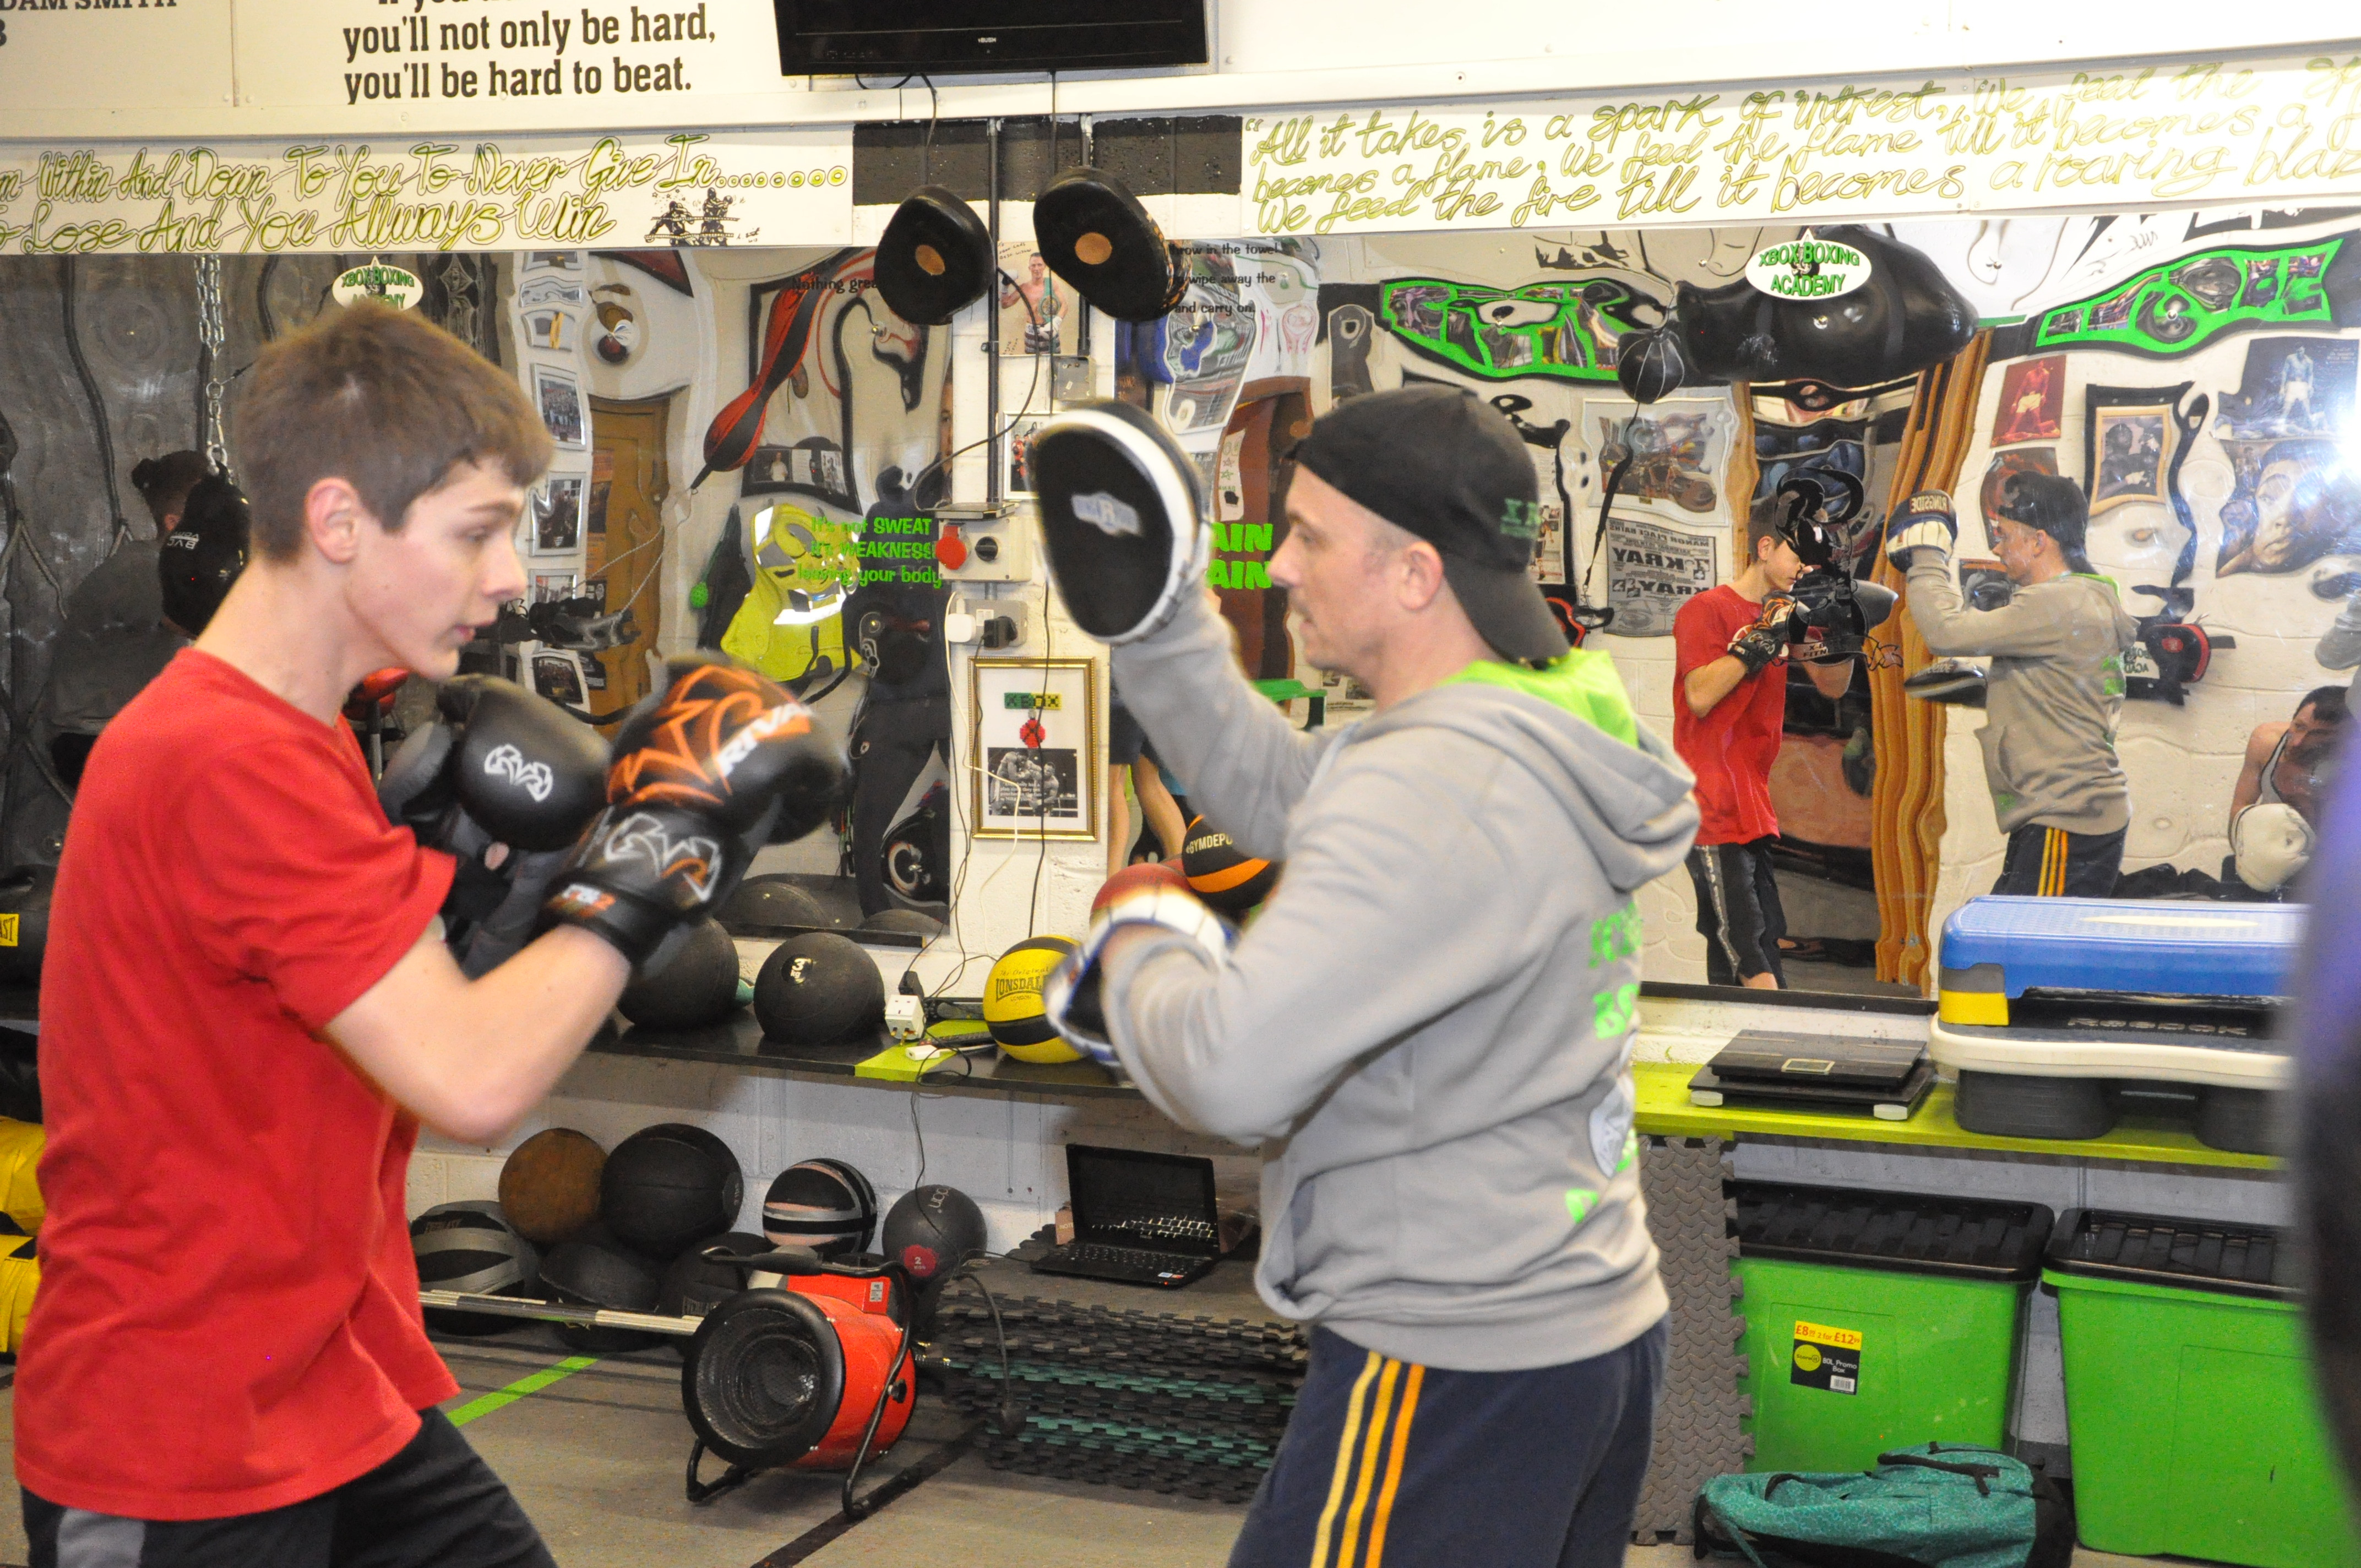 Personal Boxing Training Sessions